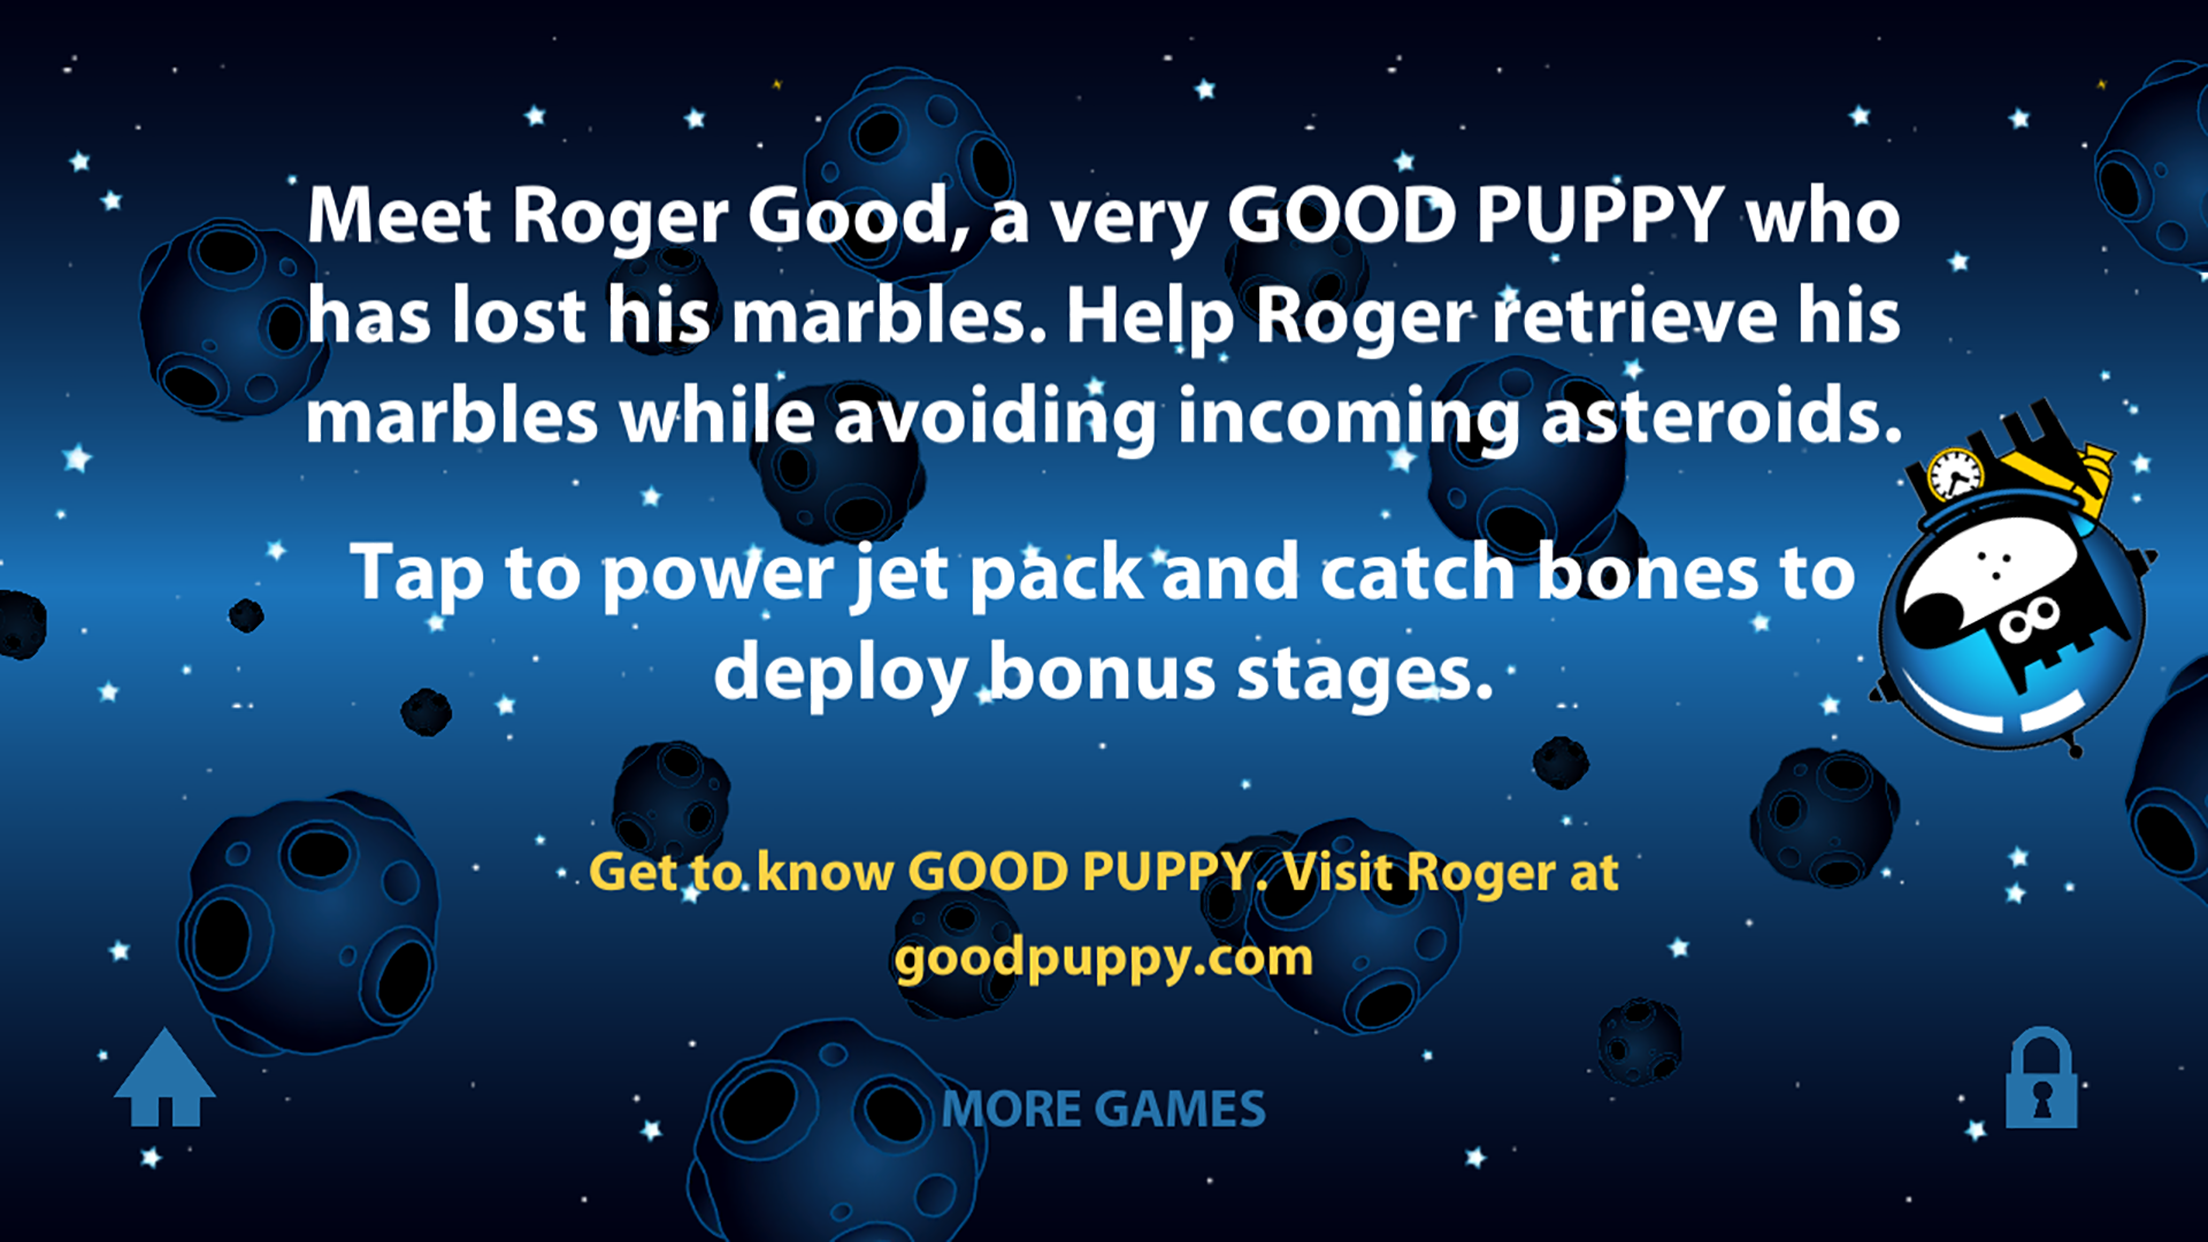 GOOD-PUPPY-Space-Walk-Infinite-Runner-Free-Download-5.png